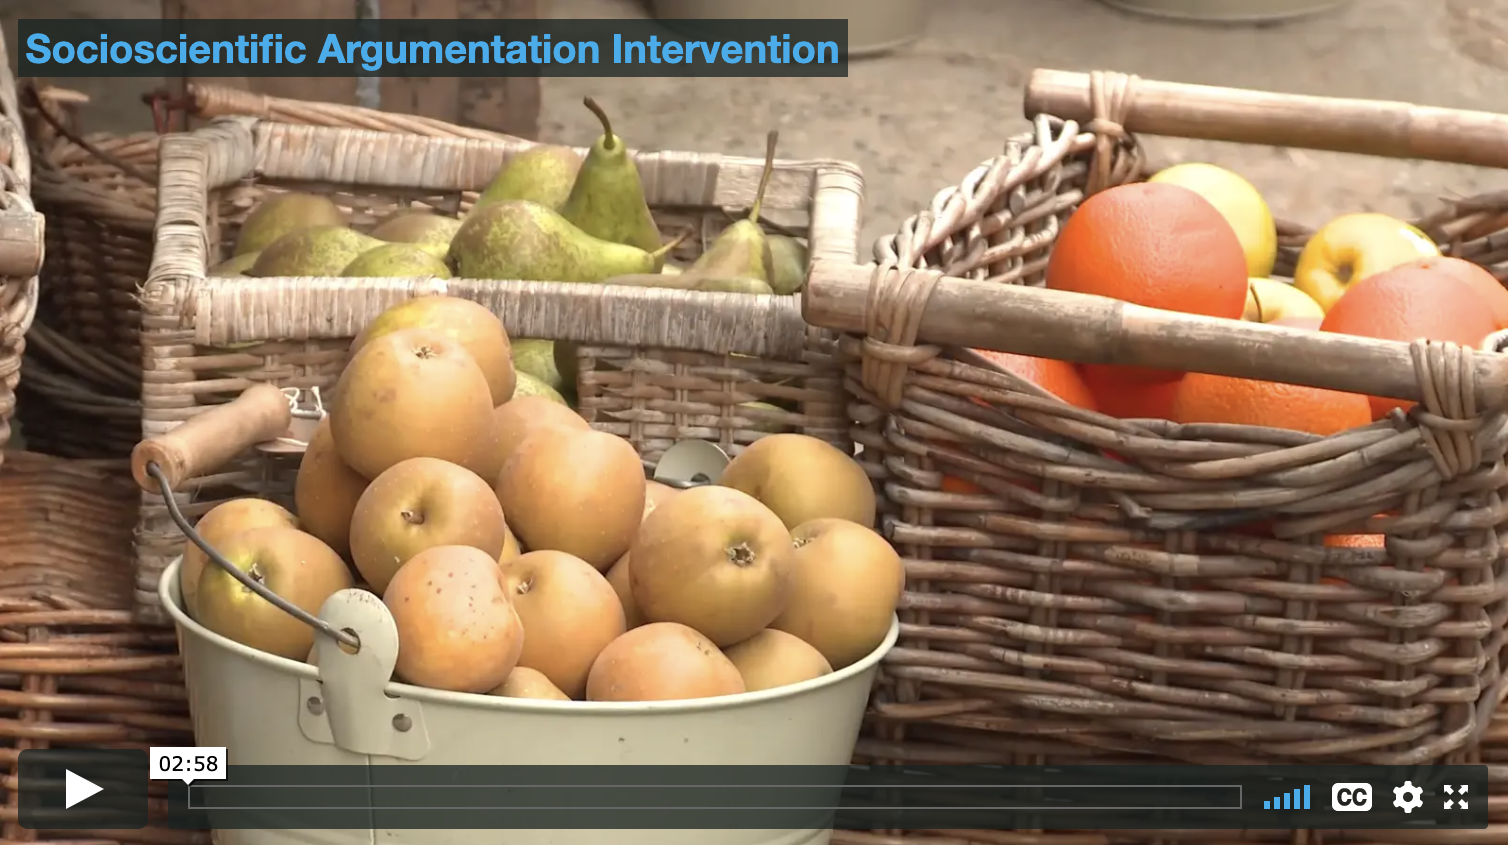 Socioscientific Argumentation Intervention